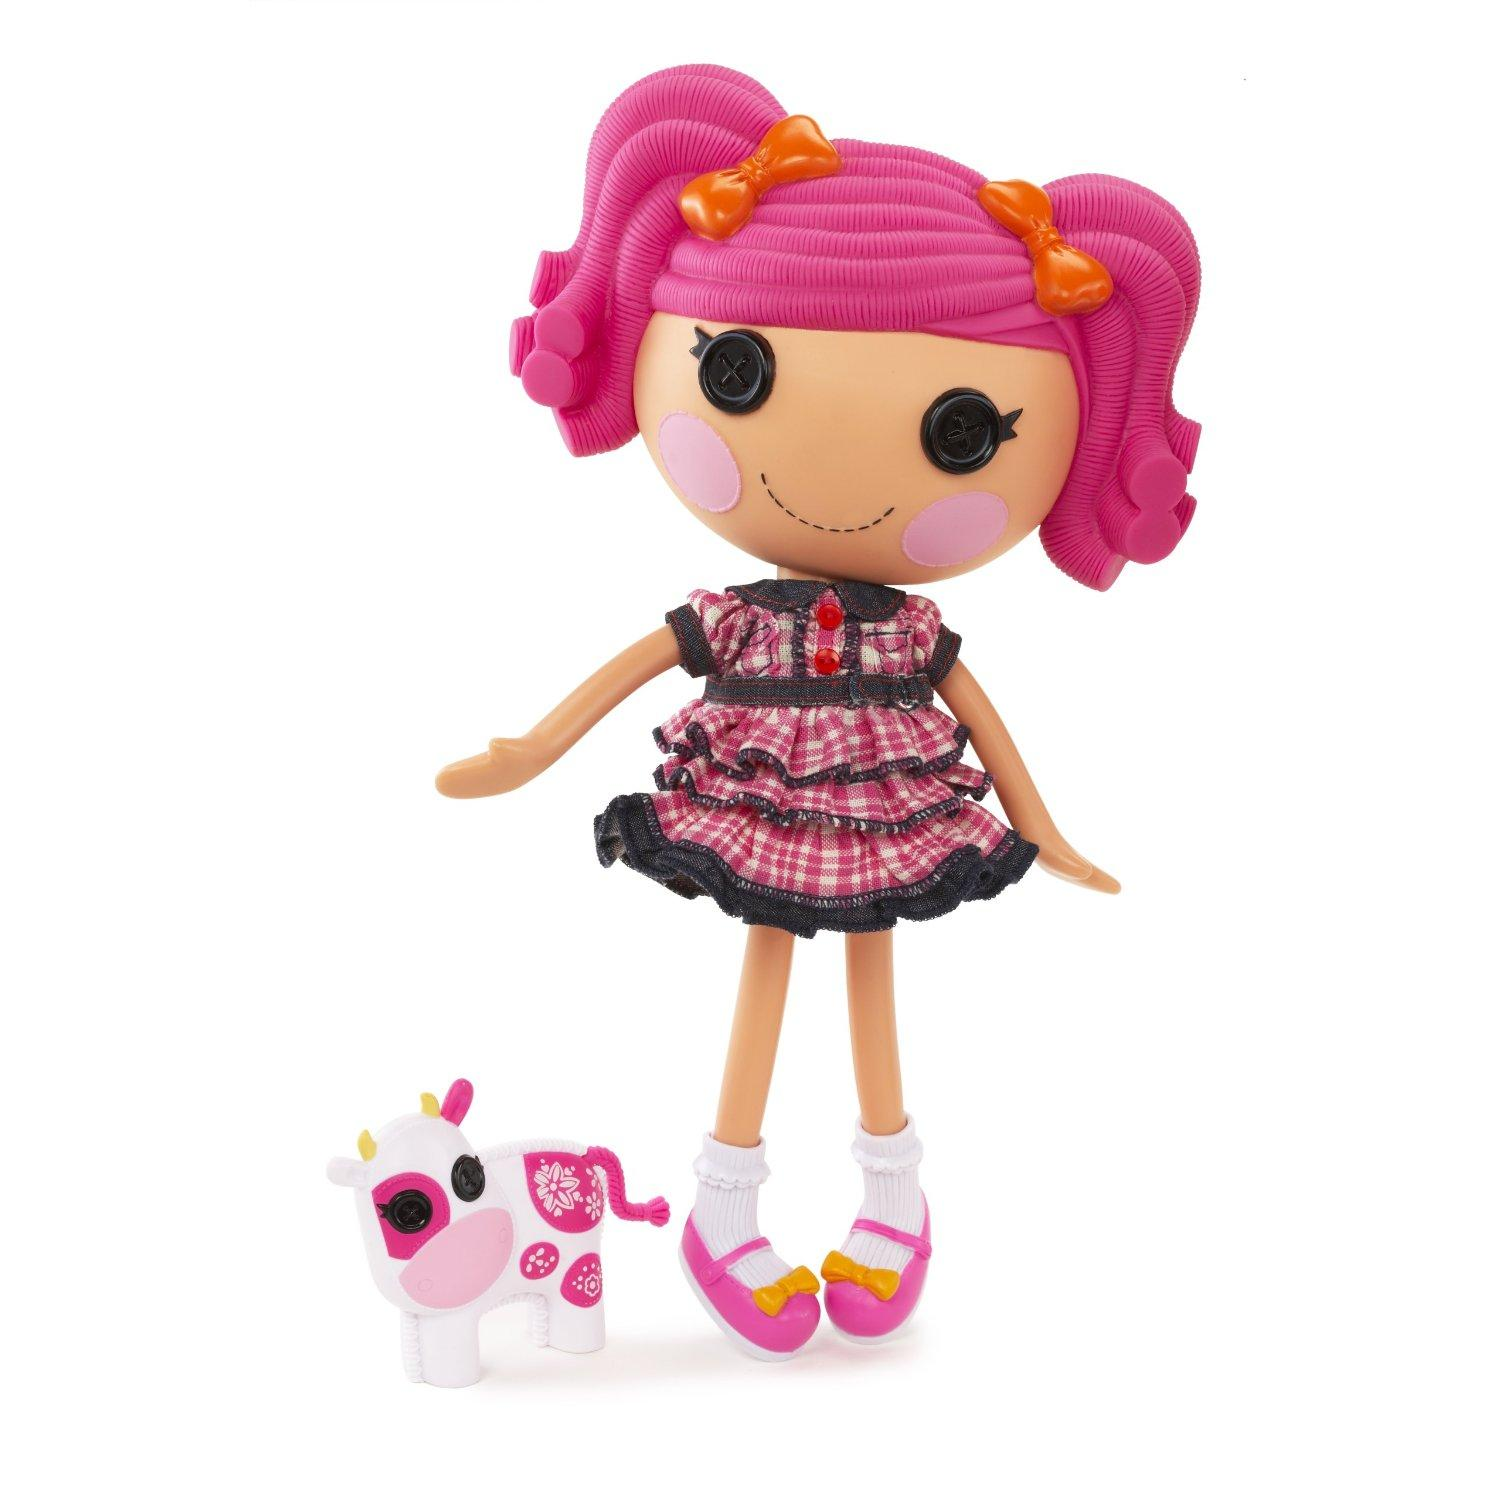 strawberry shortcake wallpaper hd